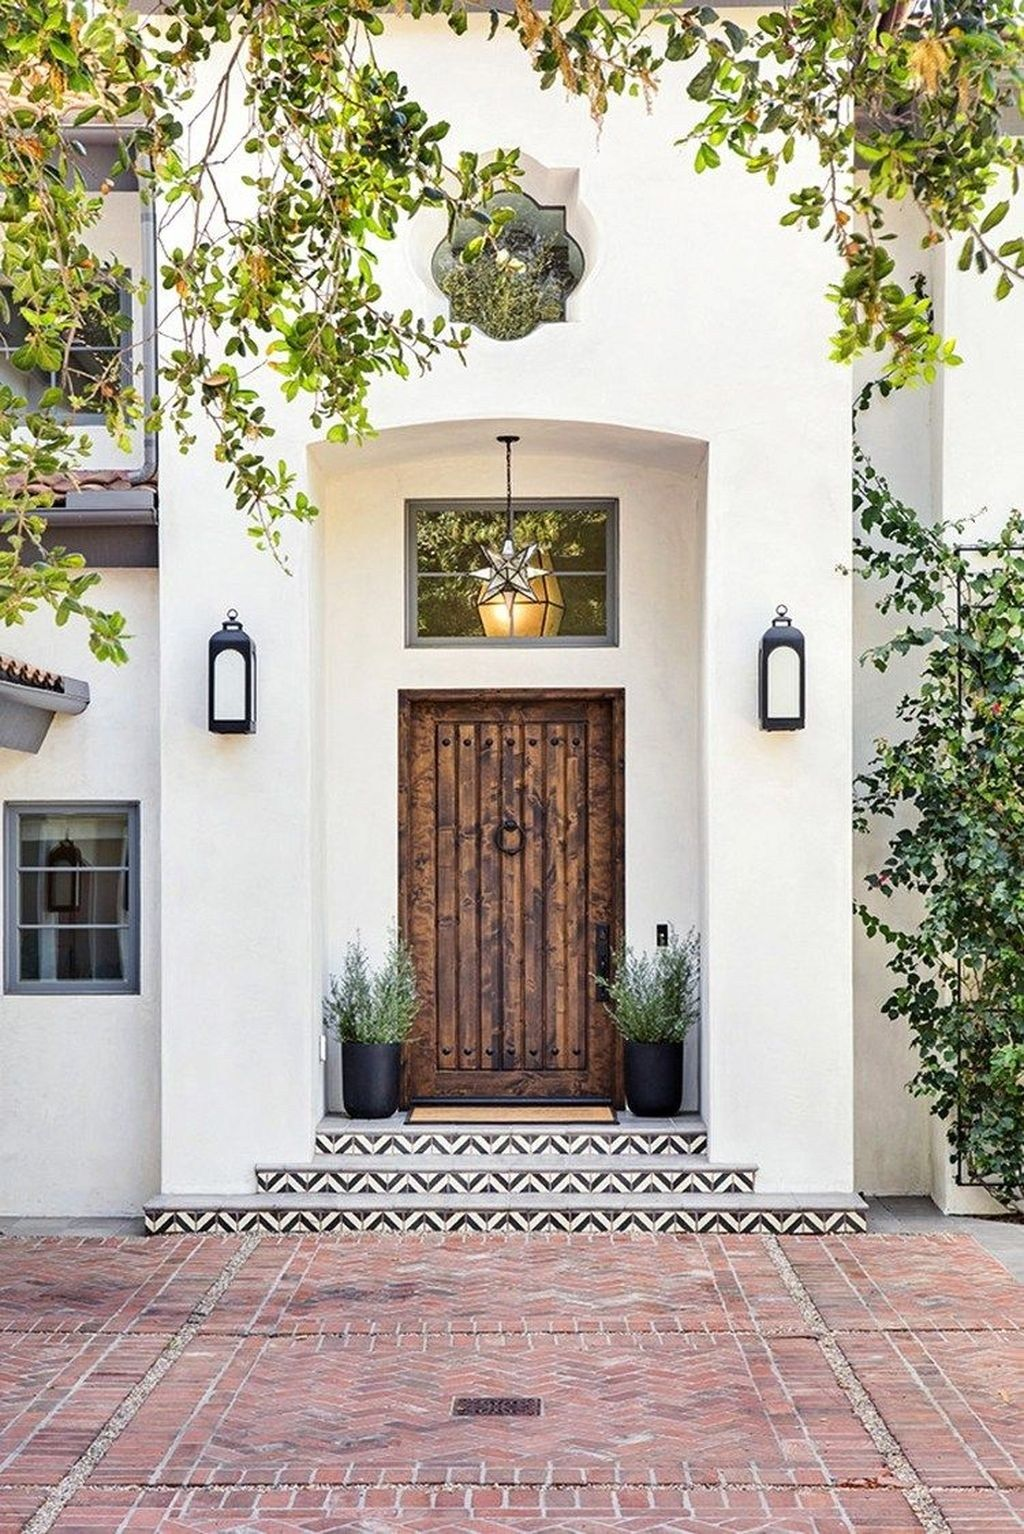 Awesome Bohemian Style Home Decor For Your Inspire 22 Mediterranean Style Homes House Exterior Spanish Style Homes